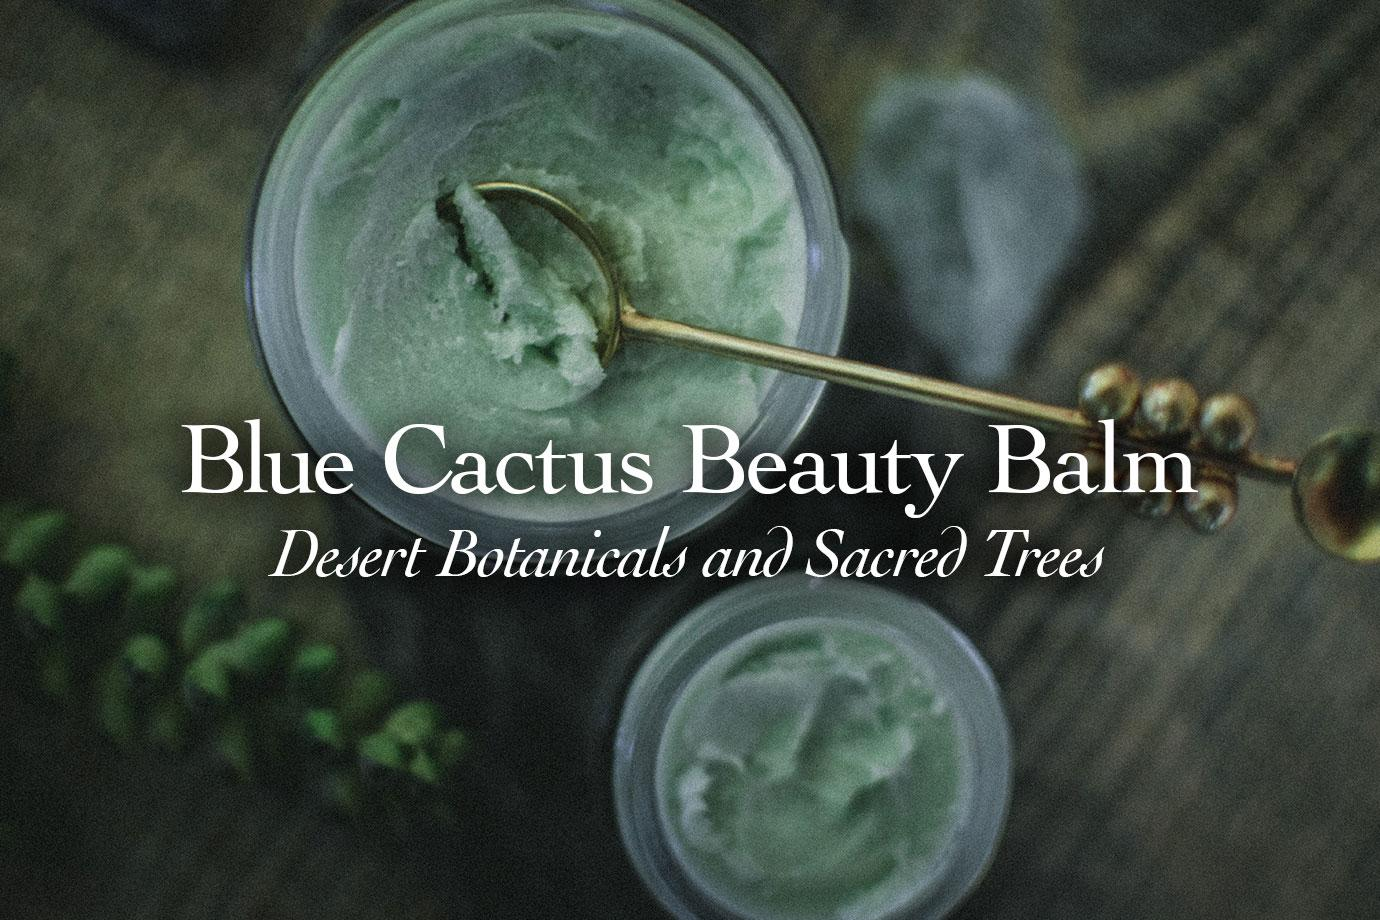 Blue Cactus Beauty Balm Desert Botanicals and Sacred Trees